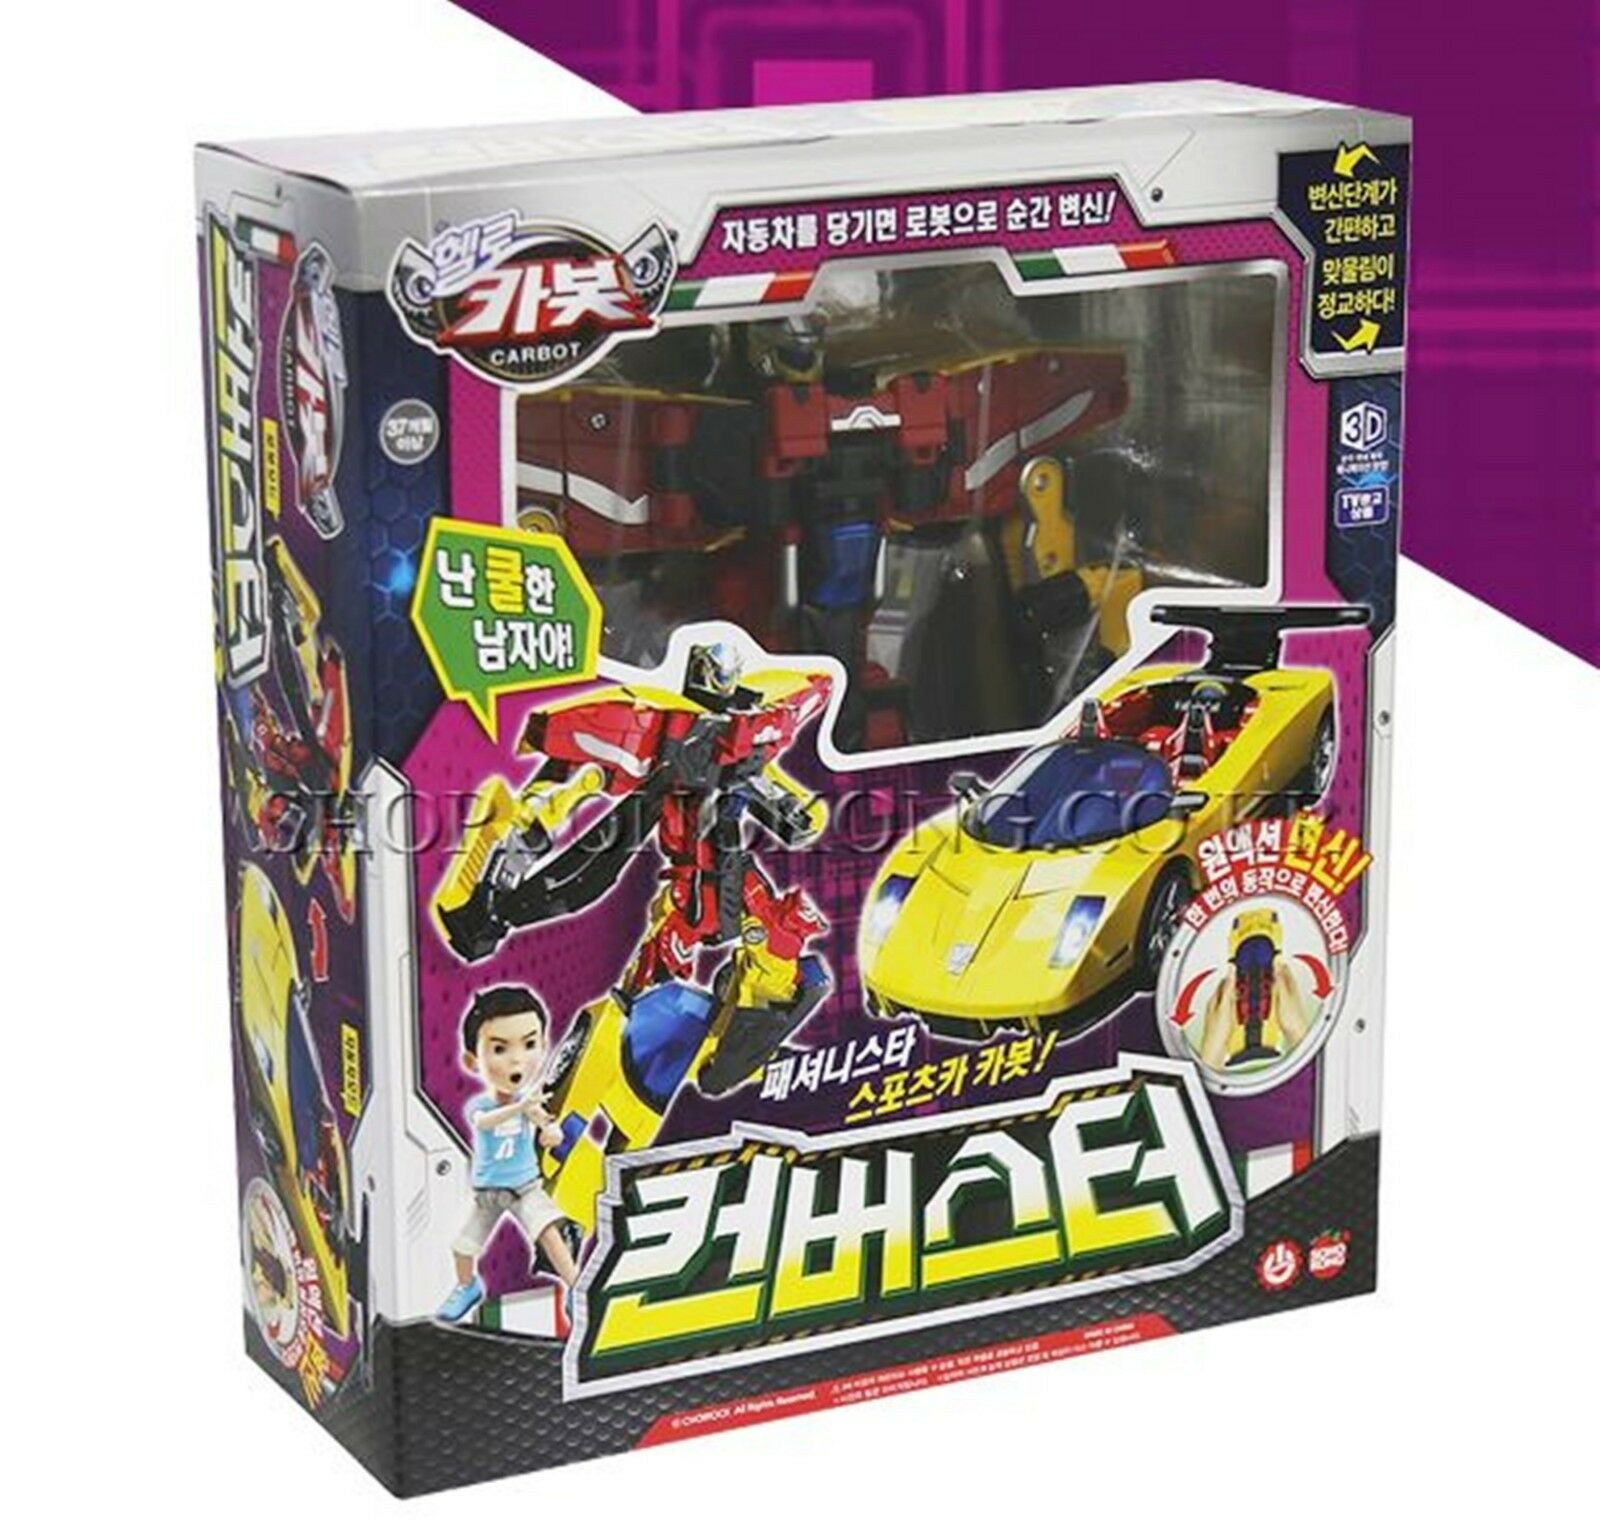 Hello Carbot CONVERSTER Transformer to Converdeible Sports Car Action Robot Toy